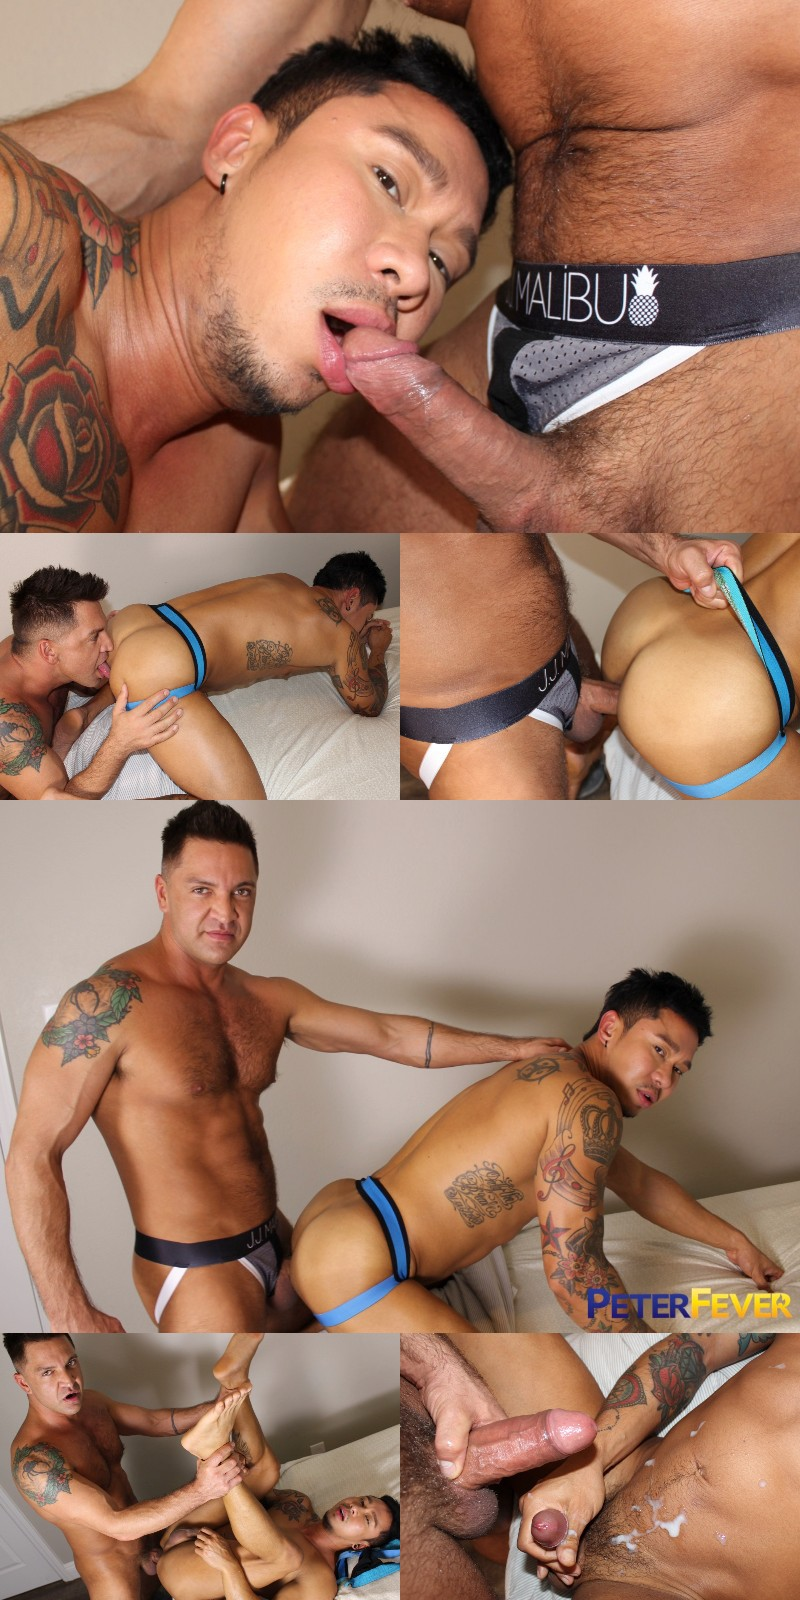 Thai Muscle Boy Gets Fucked in Peter Fever's Third Bareback Video